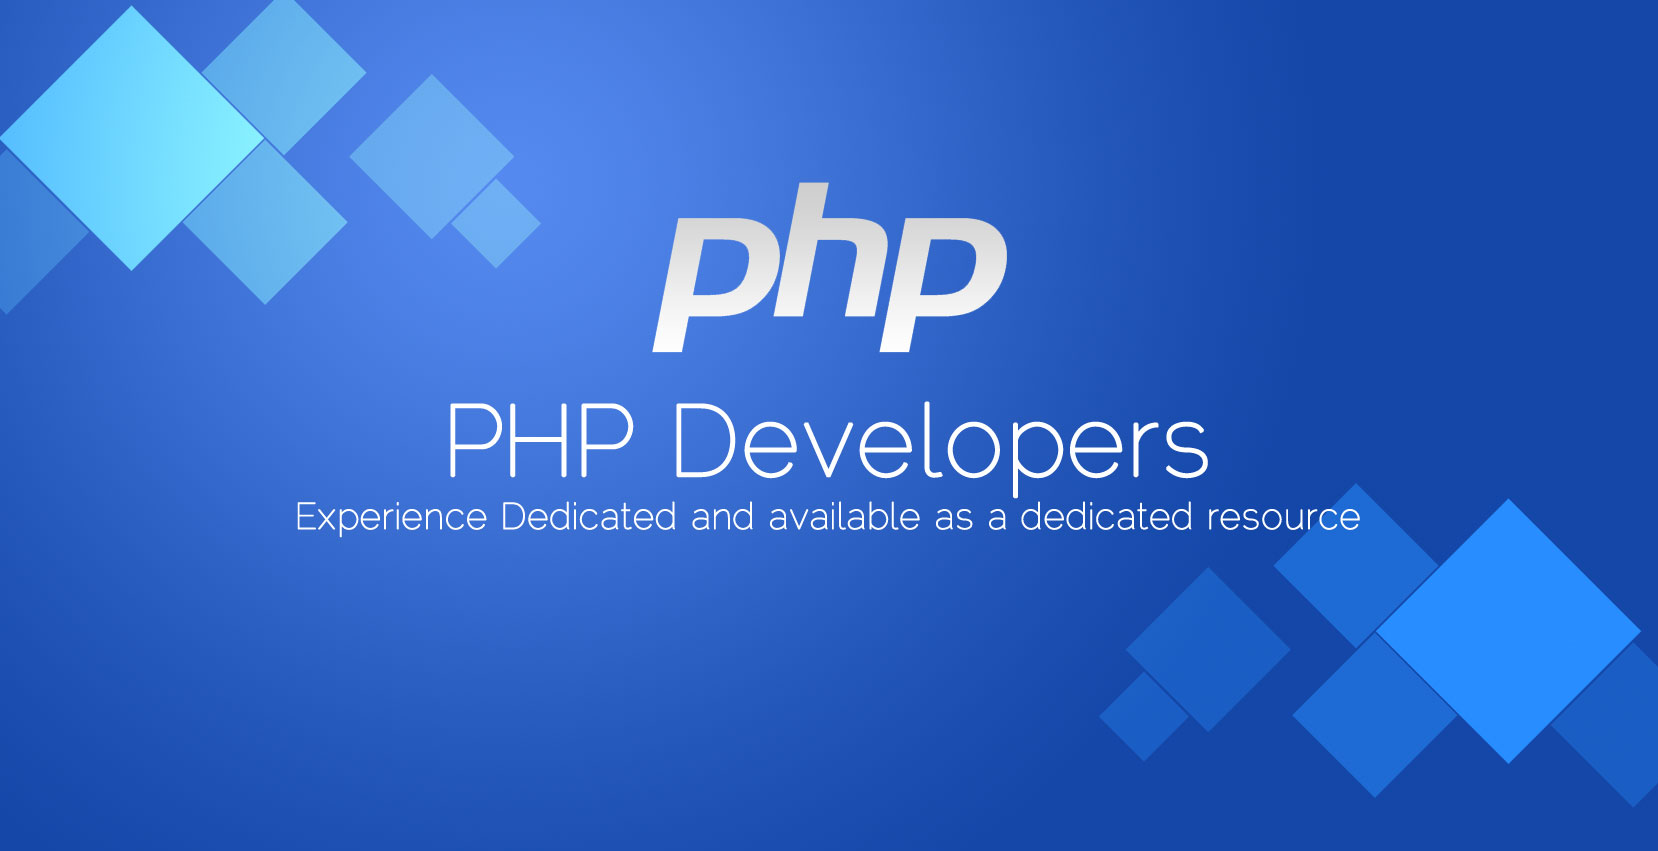 PHP development company in Gurgaon